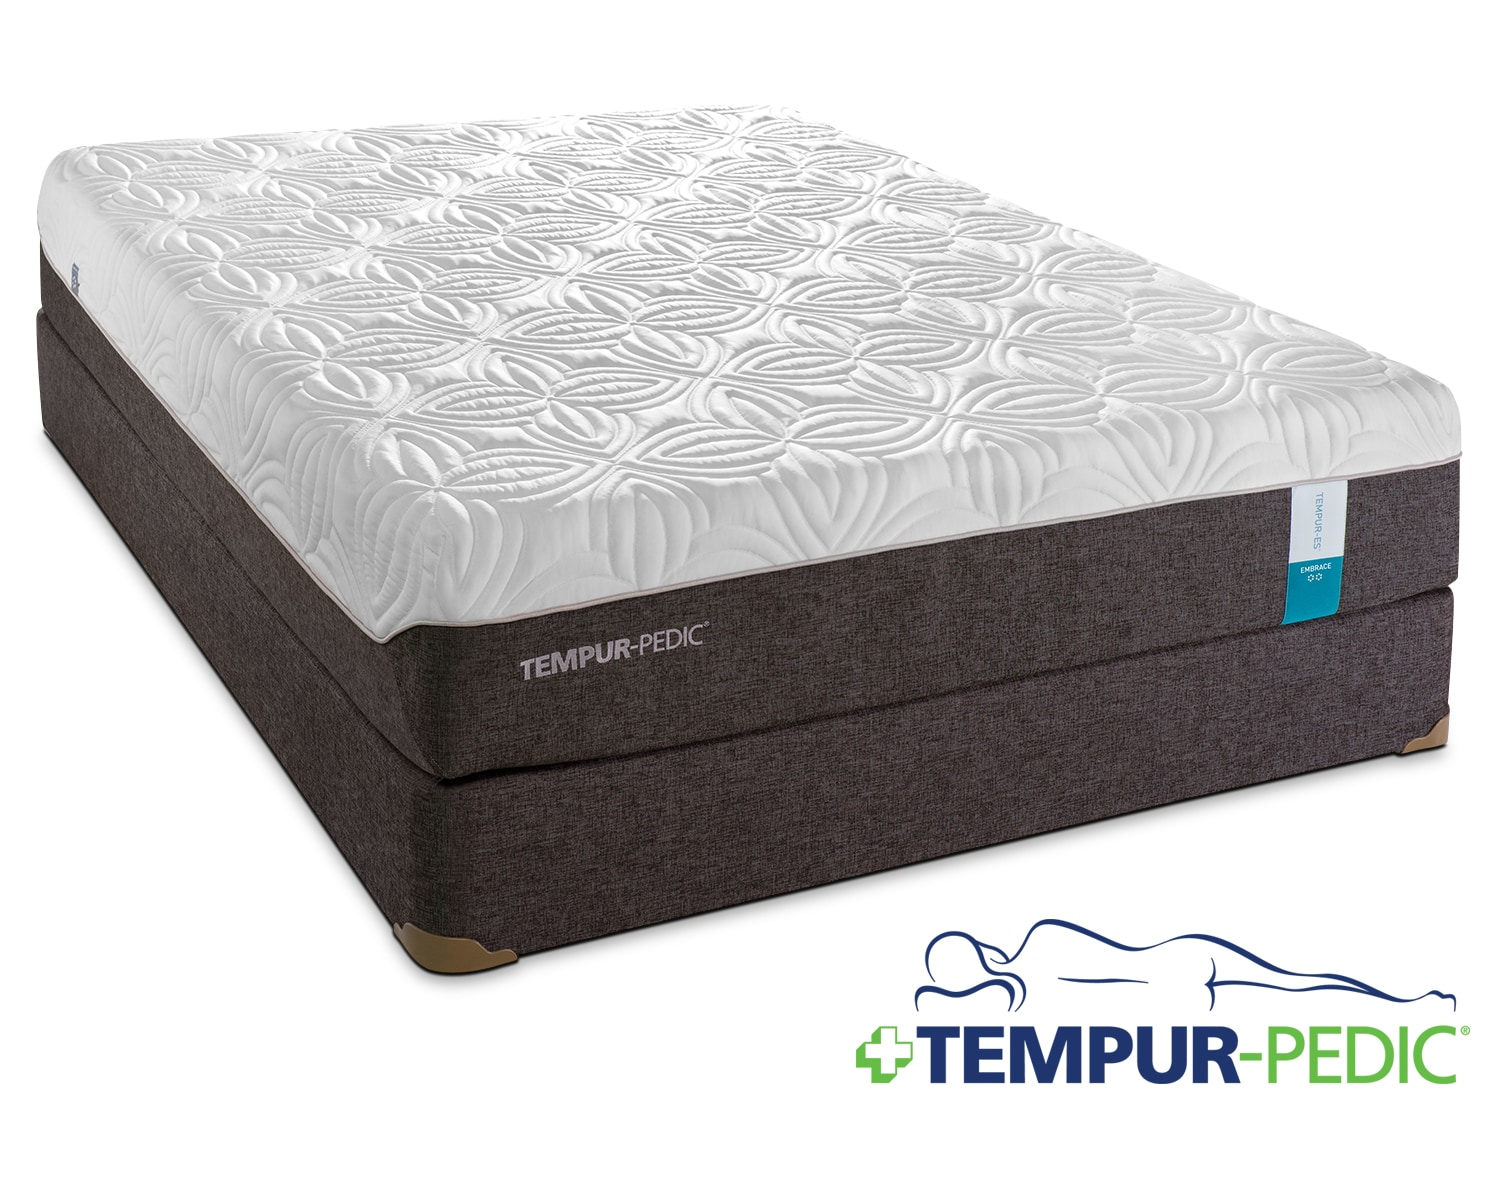 The Tempur-Pedic Embrace Collection